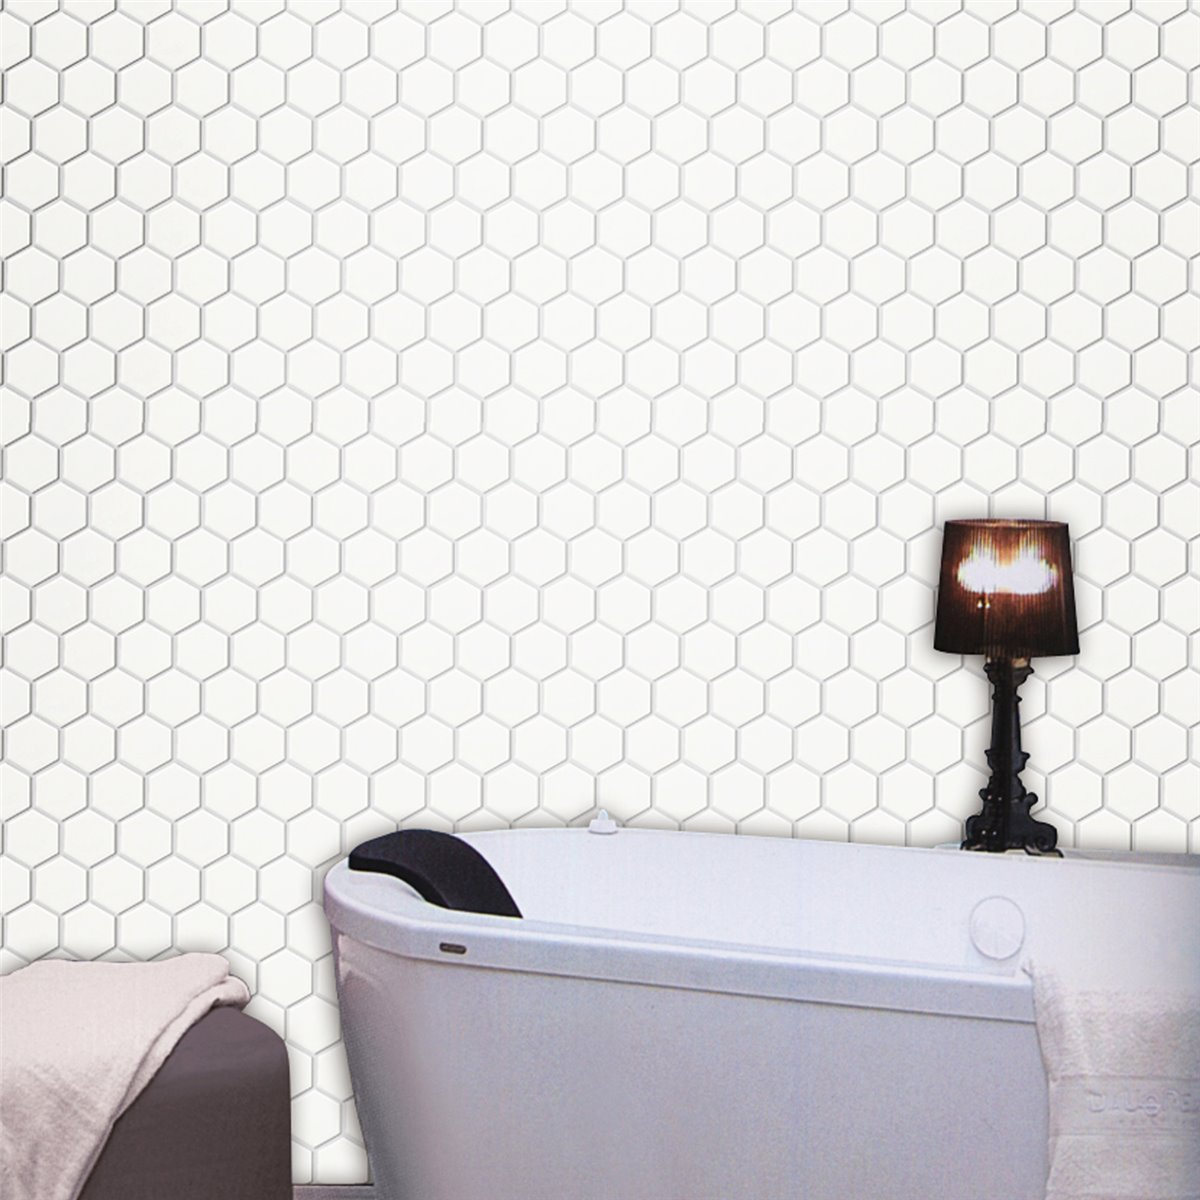 keramik mosaik fliesen hexagon weiss gl nzend tm33325. Black Bedroom Furniture Sets. Home Design Ideas